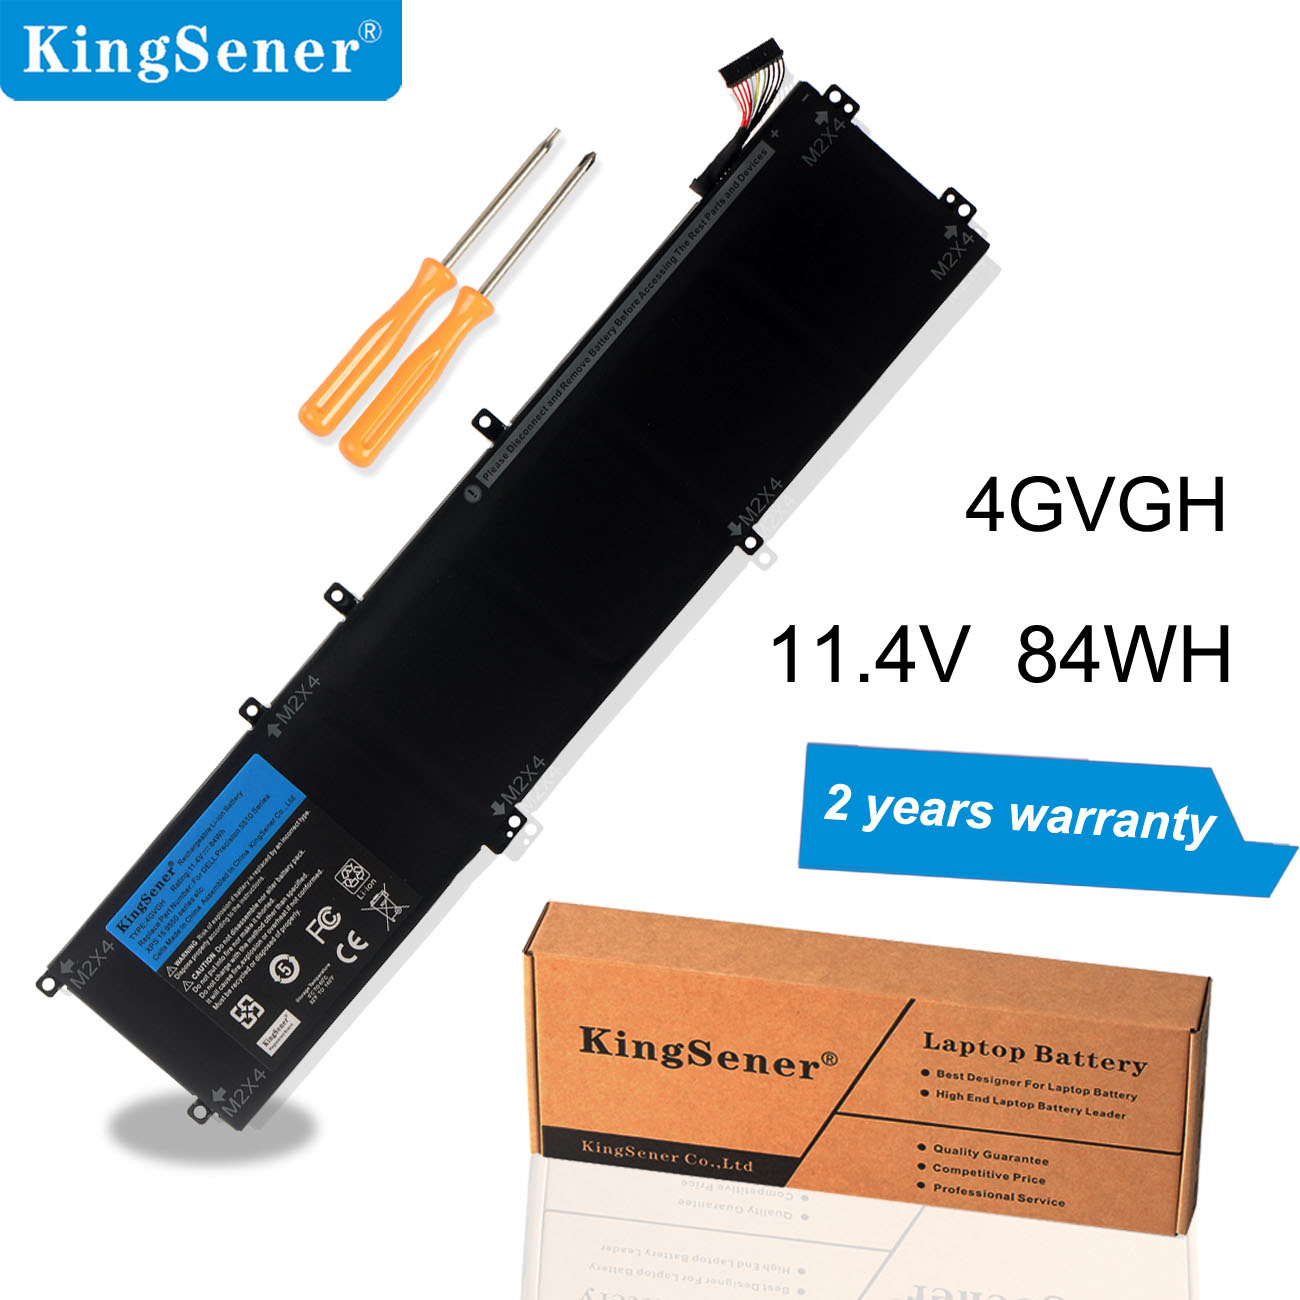 KingSener New 4GVGH Laptop Battery for DELL Precision 5510 XPS 15 9550 series 1P6KD T453X 11.4V 84WH-in Laptop Batteries from Computer & Office